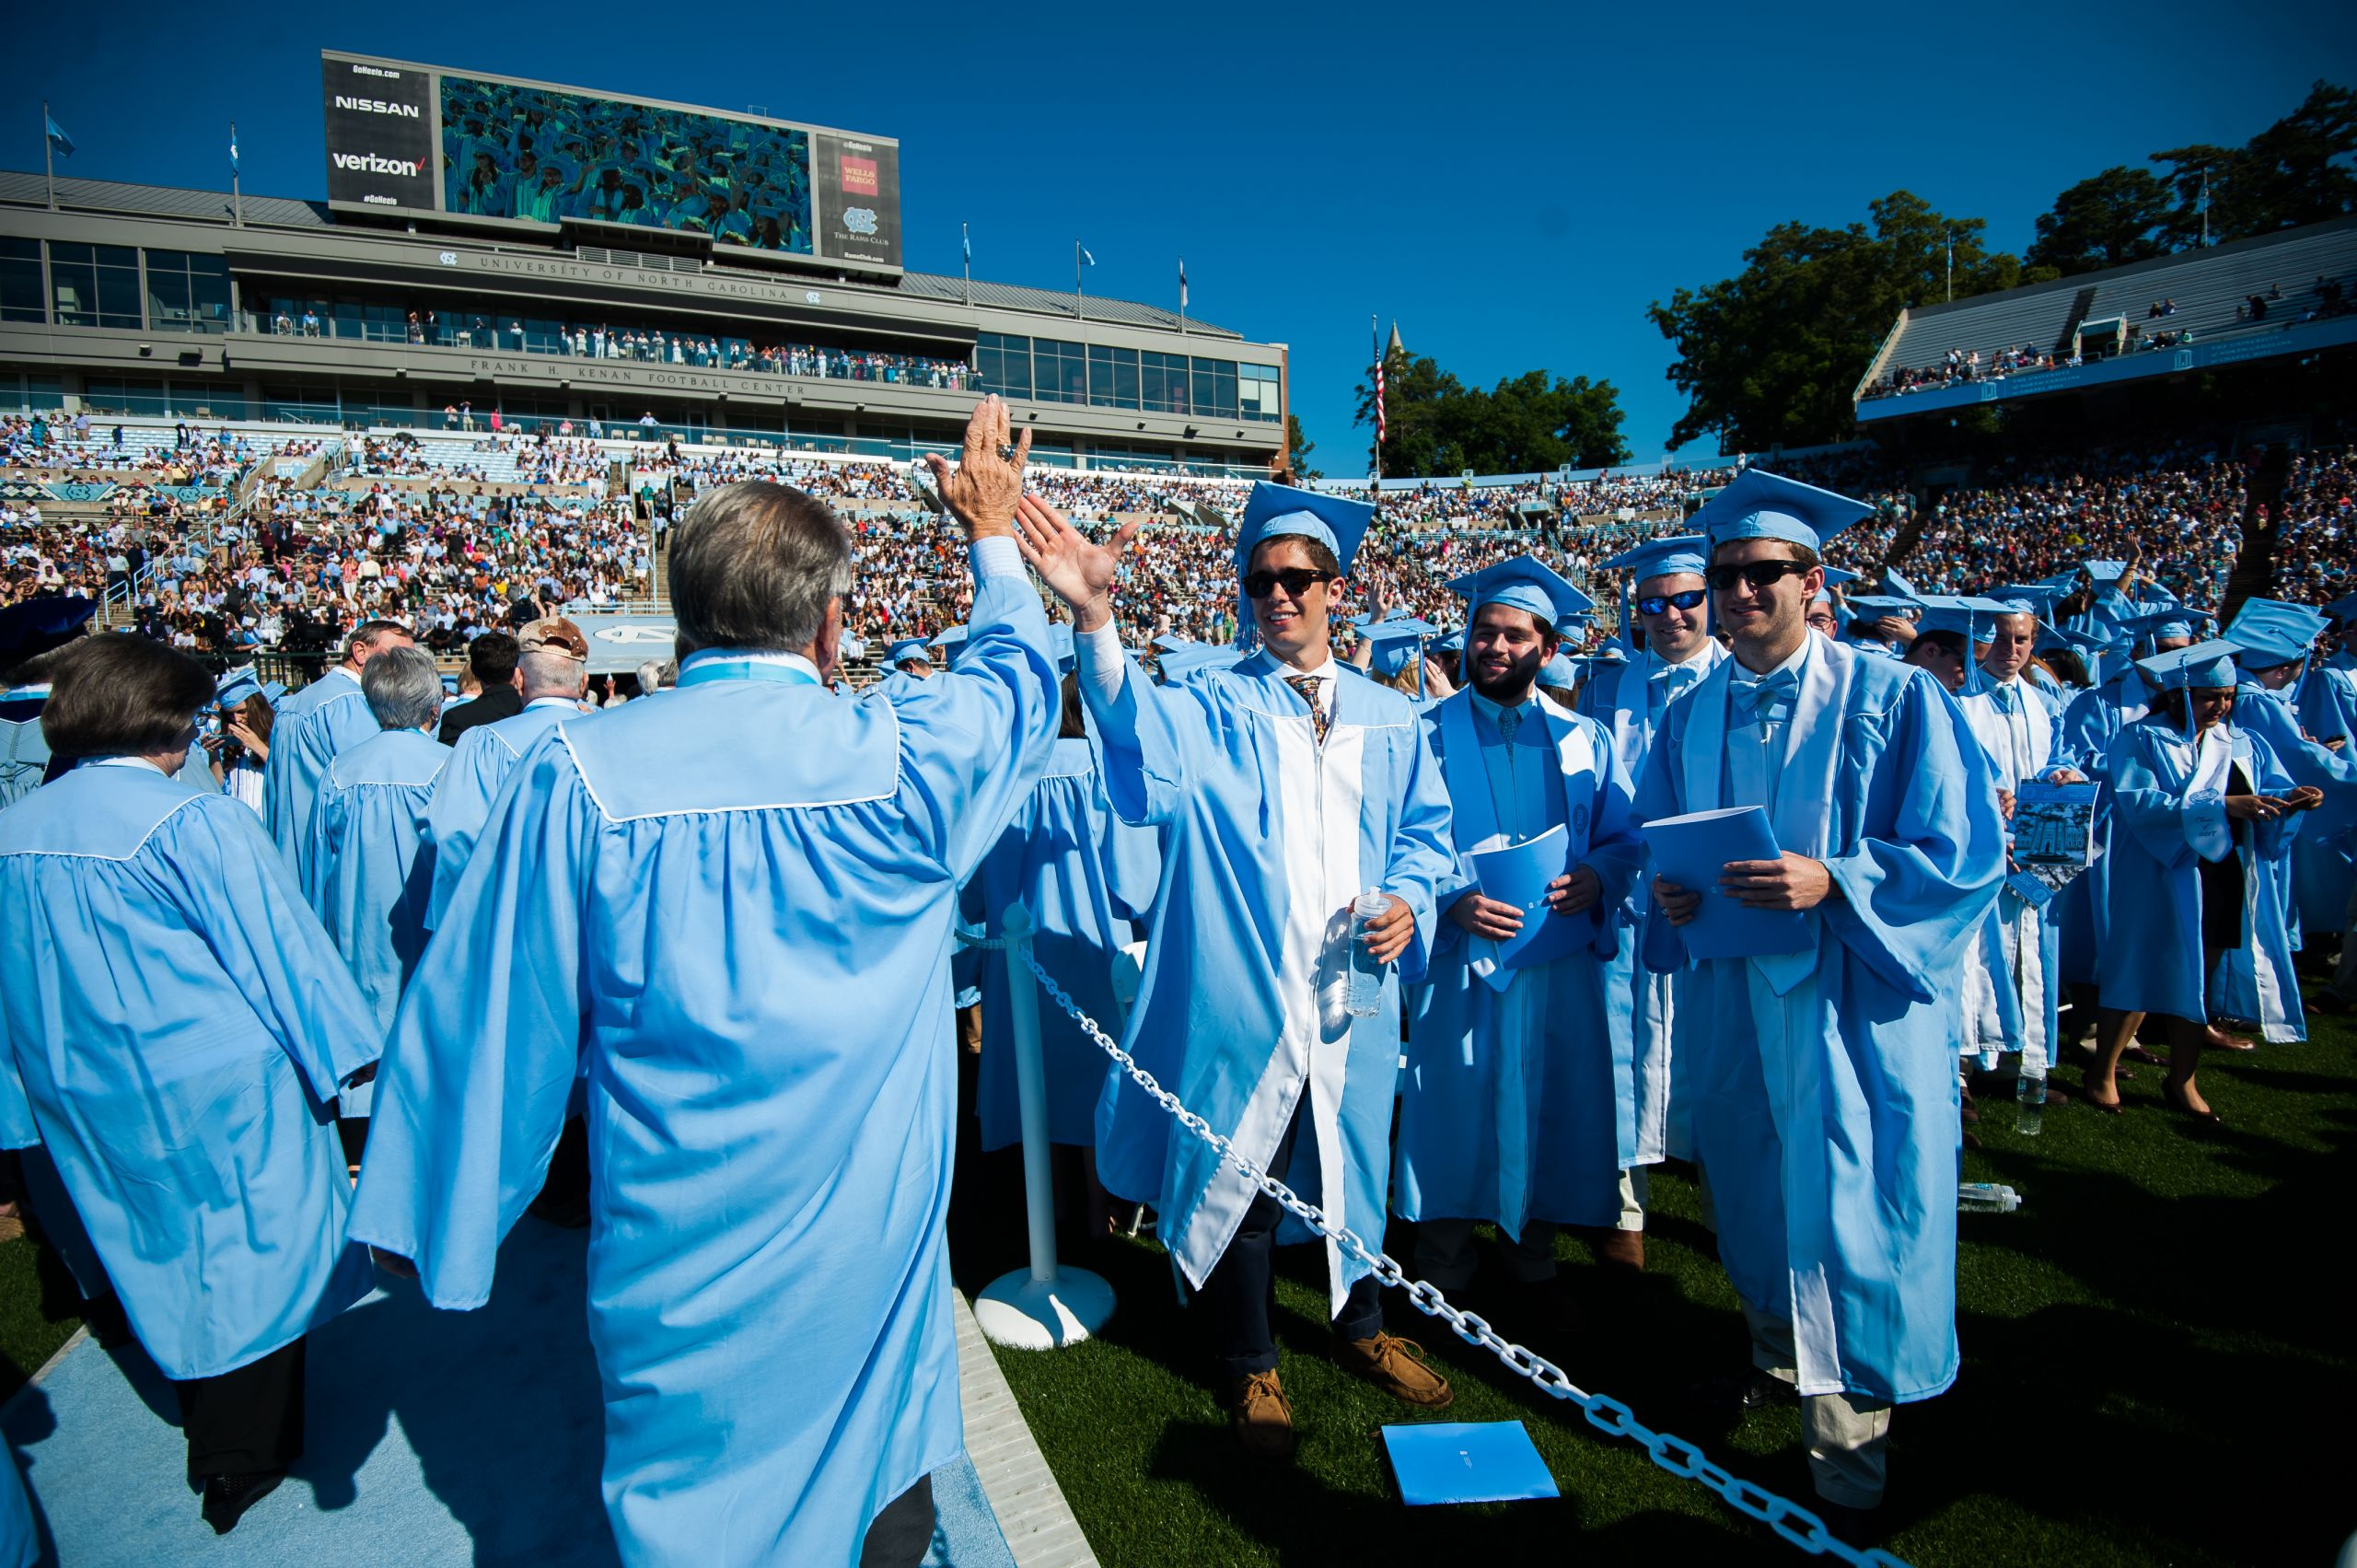 Members of the class of 2017 high-five the alumni as they march in Kenan Stadium. (Photo by Shane Snider)